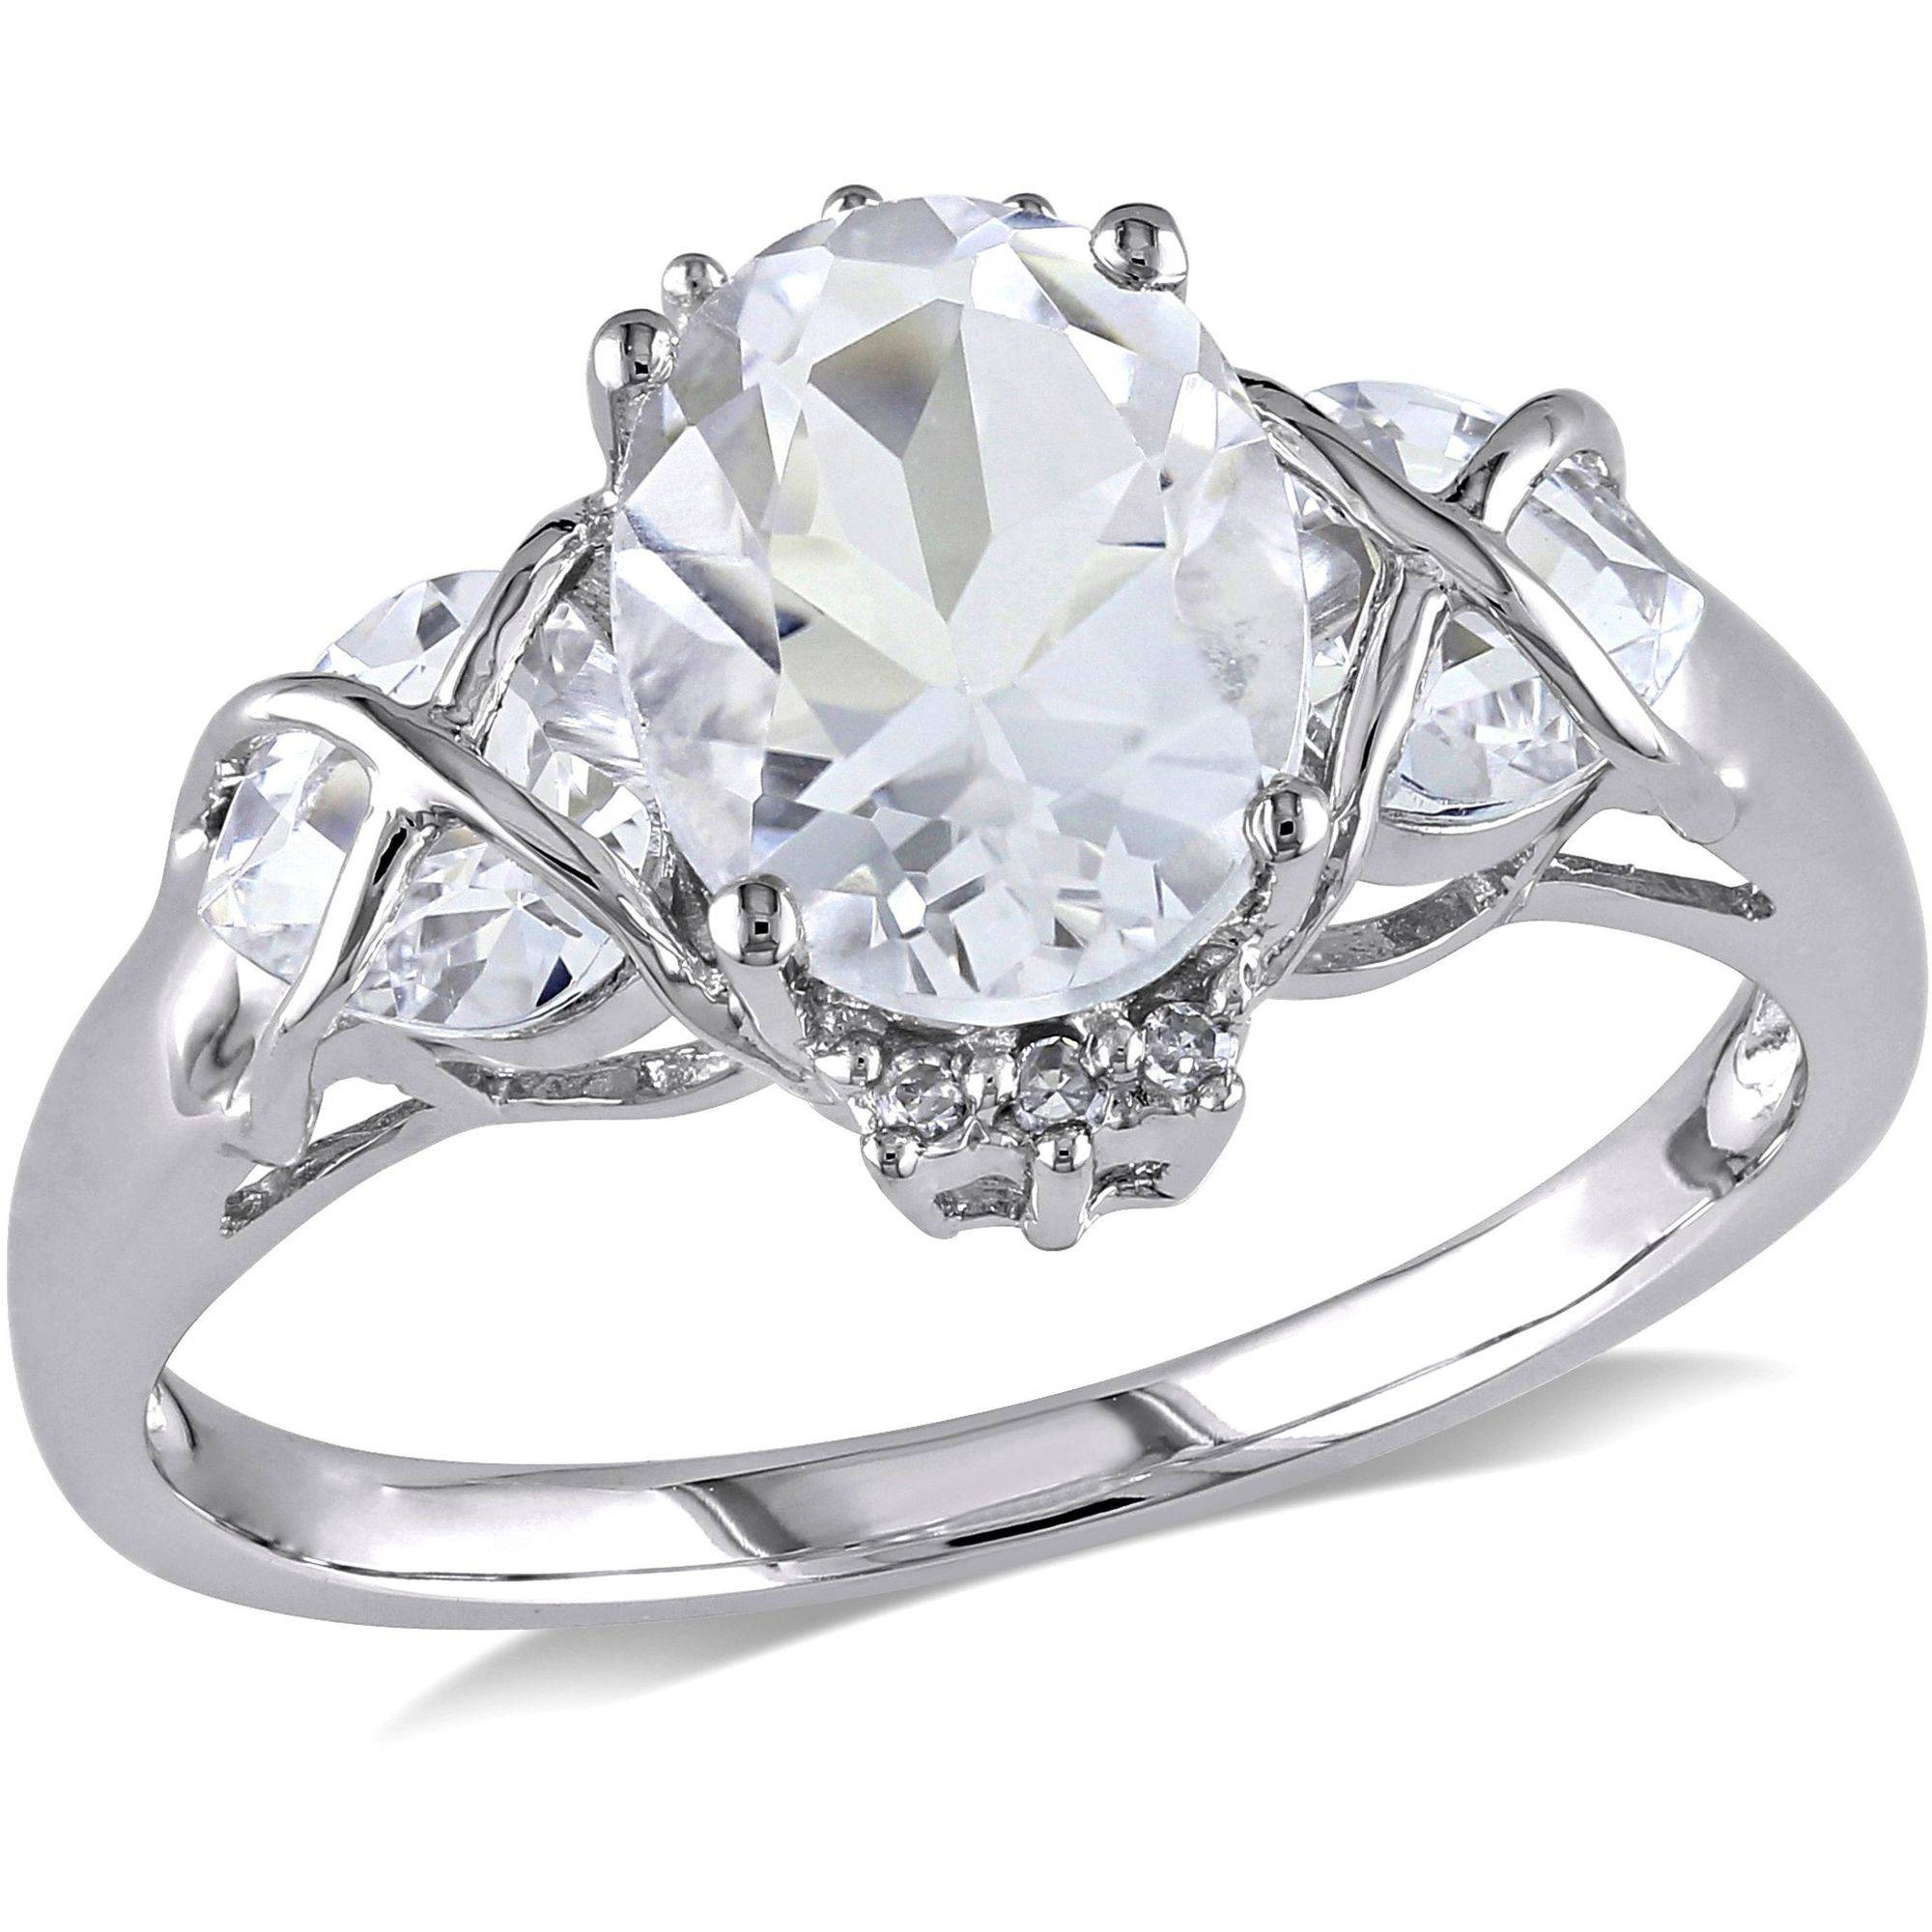 Miabella 3-1 3 Carat T.G.W. Oval- and Heart-Cut White Topaz and Diamond-Accent 10kt White Gold Three-Stone Engagement... by Miabella